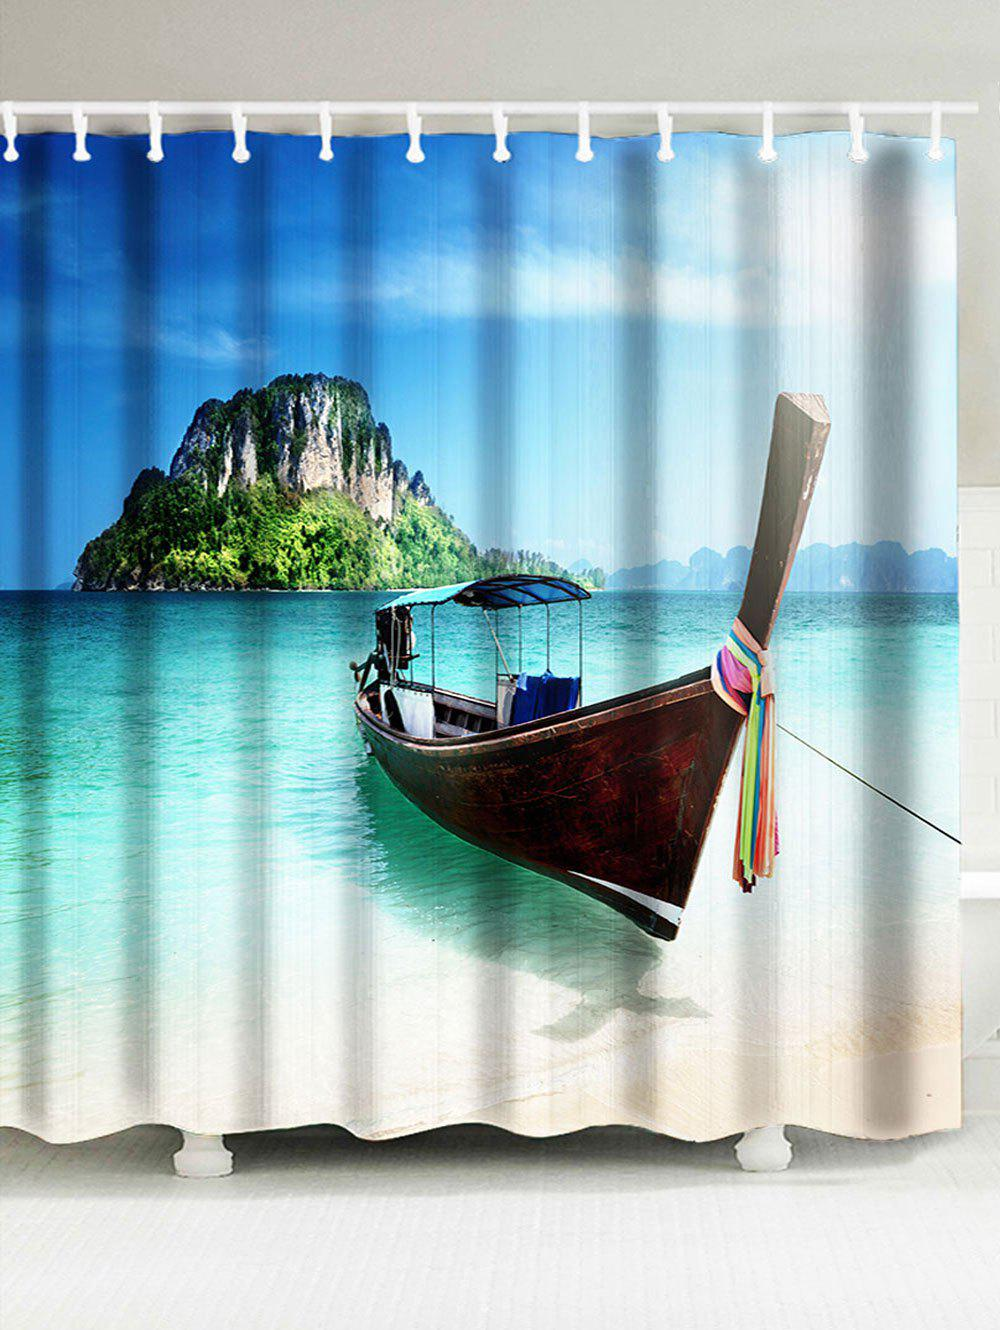 Scenic Boat Island Fabric Shower Curtain - BLUE W71 INCH * L79 INCH